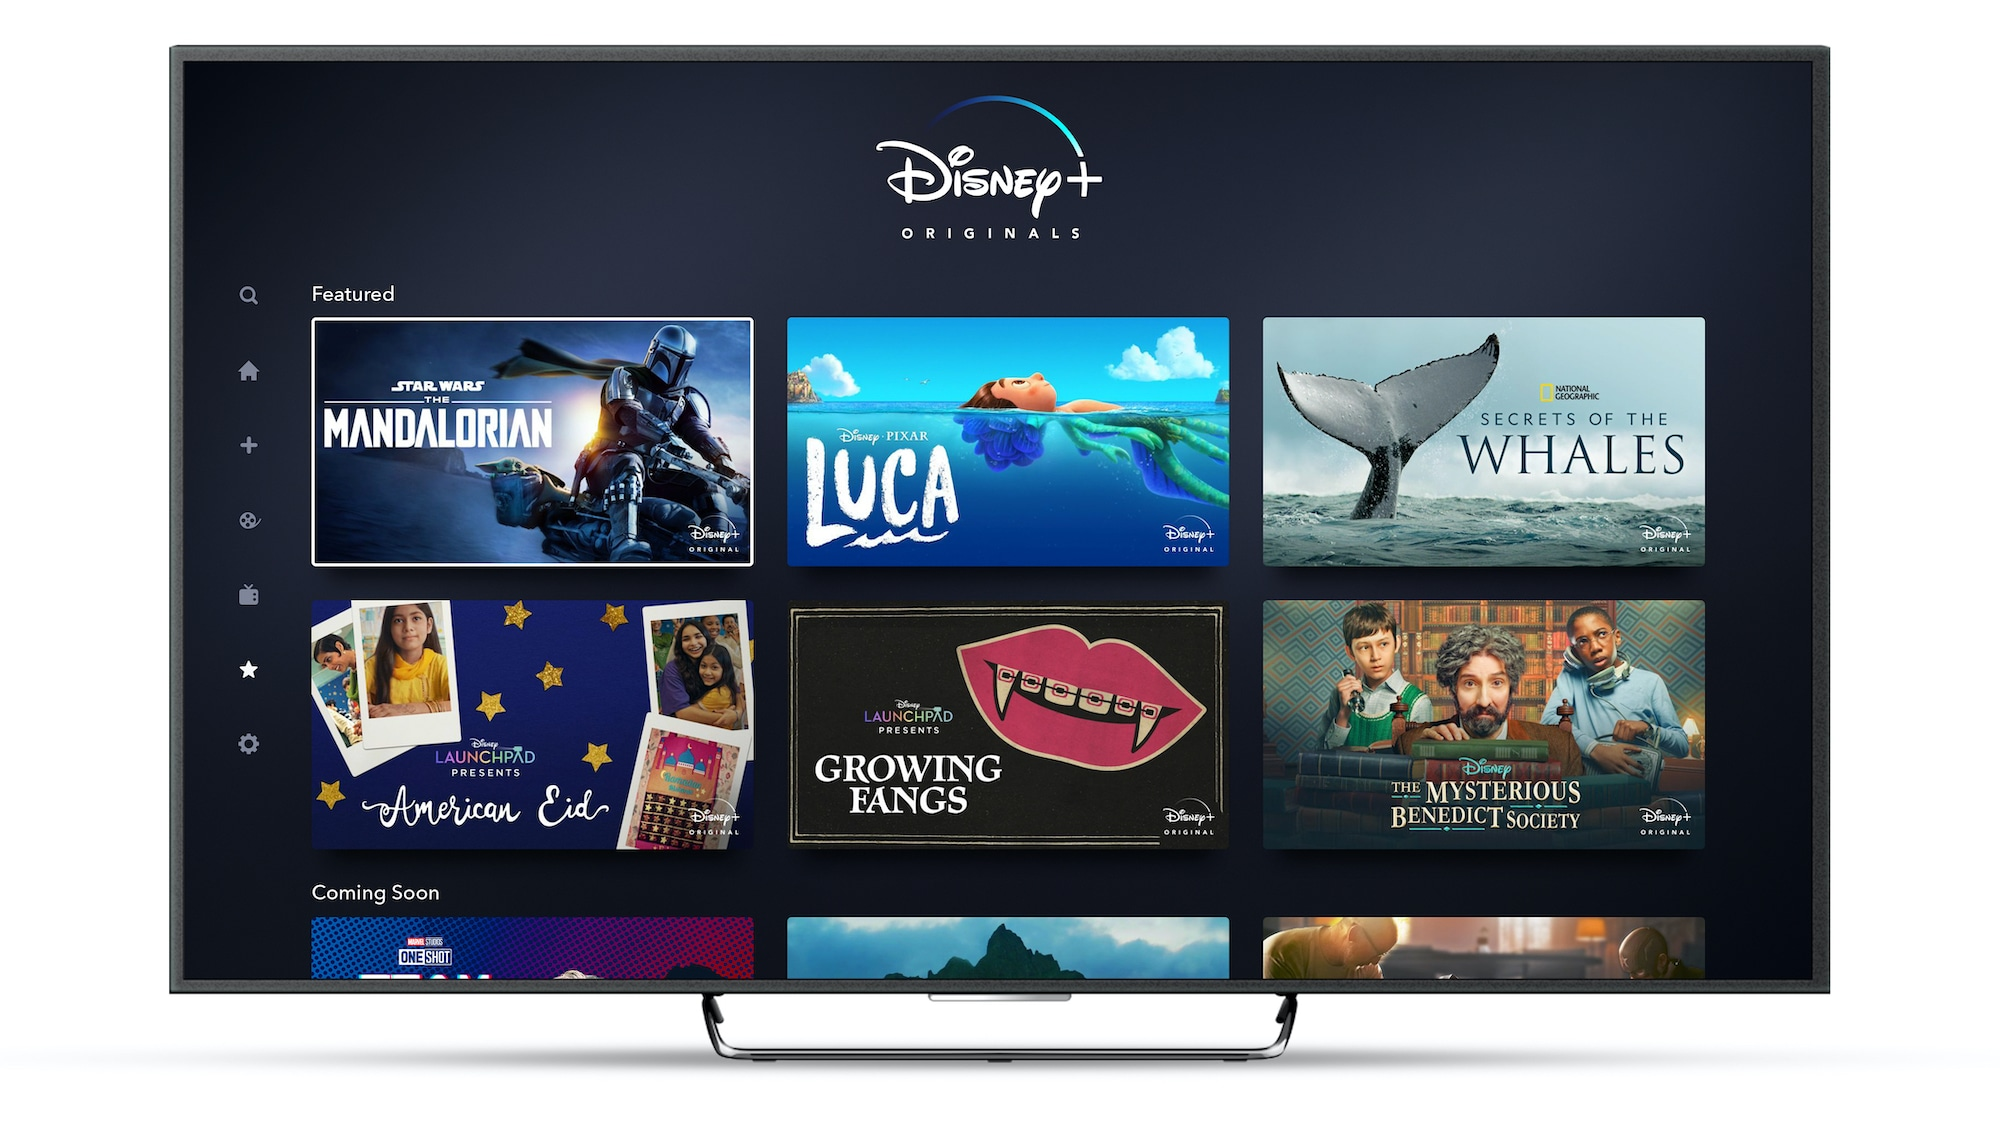 Disney+ Originals Page on Connected TV Device